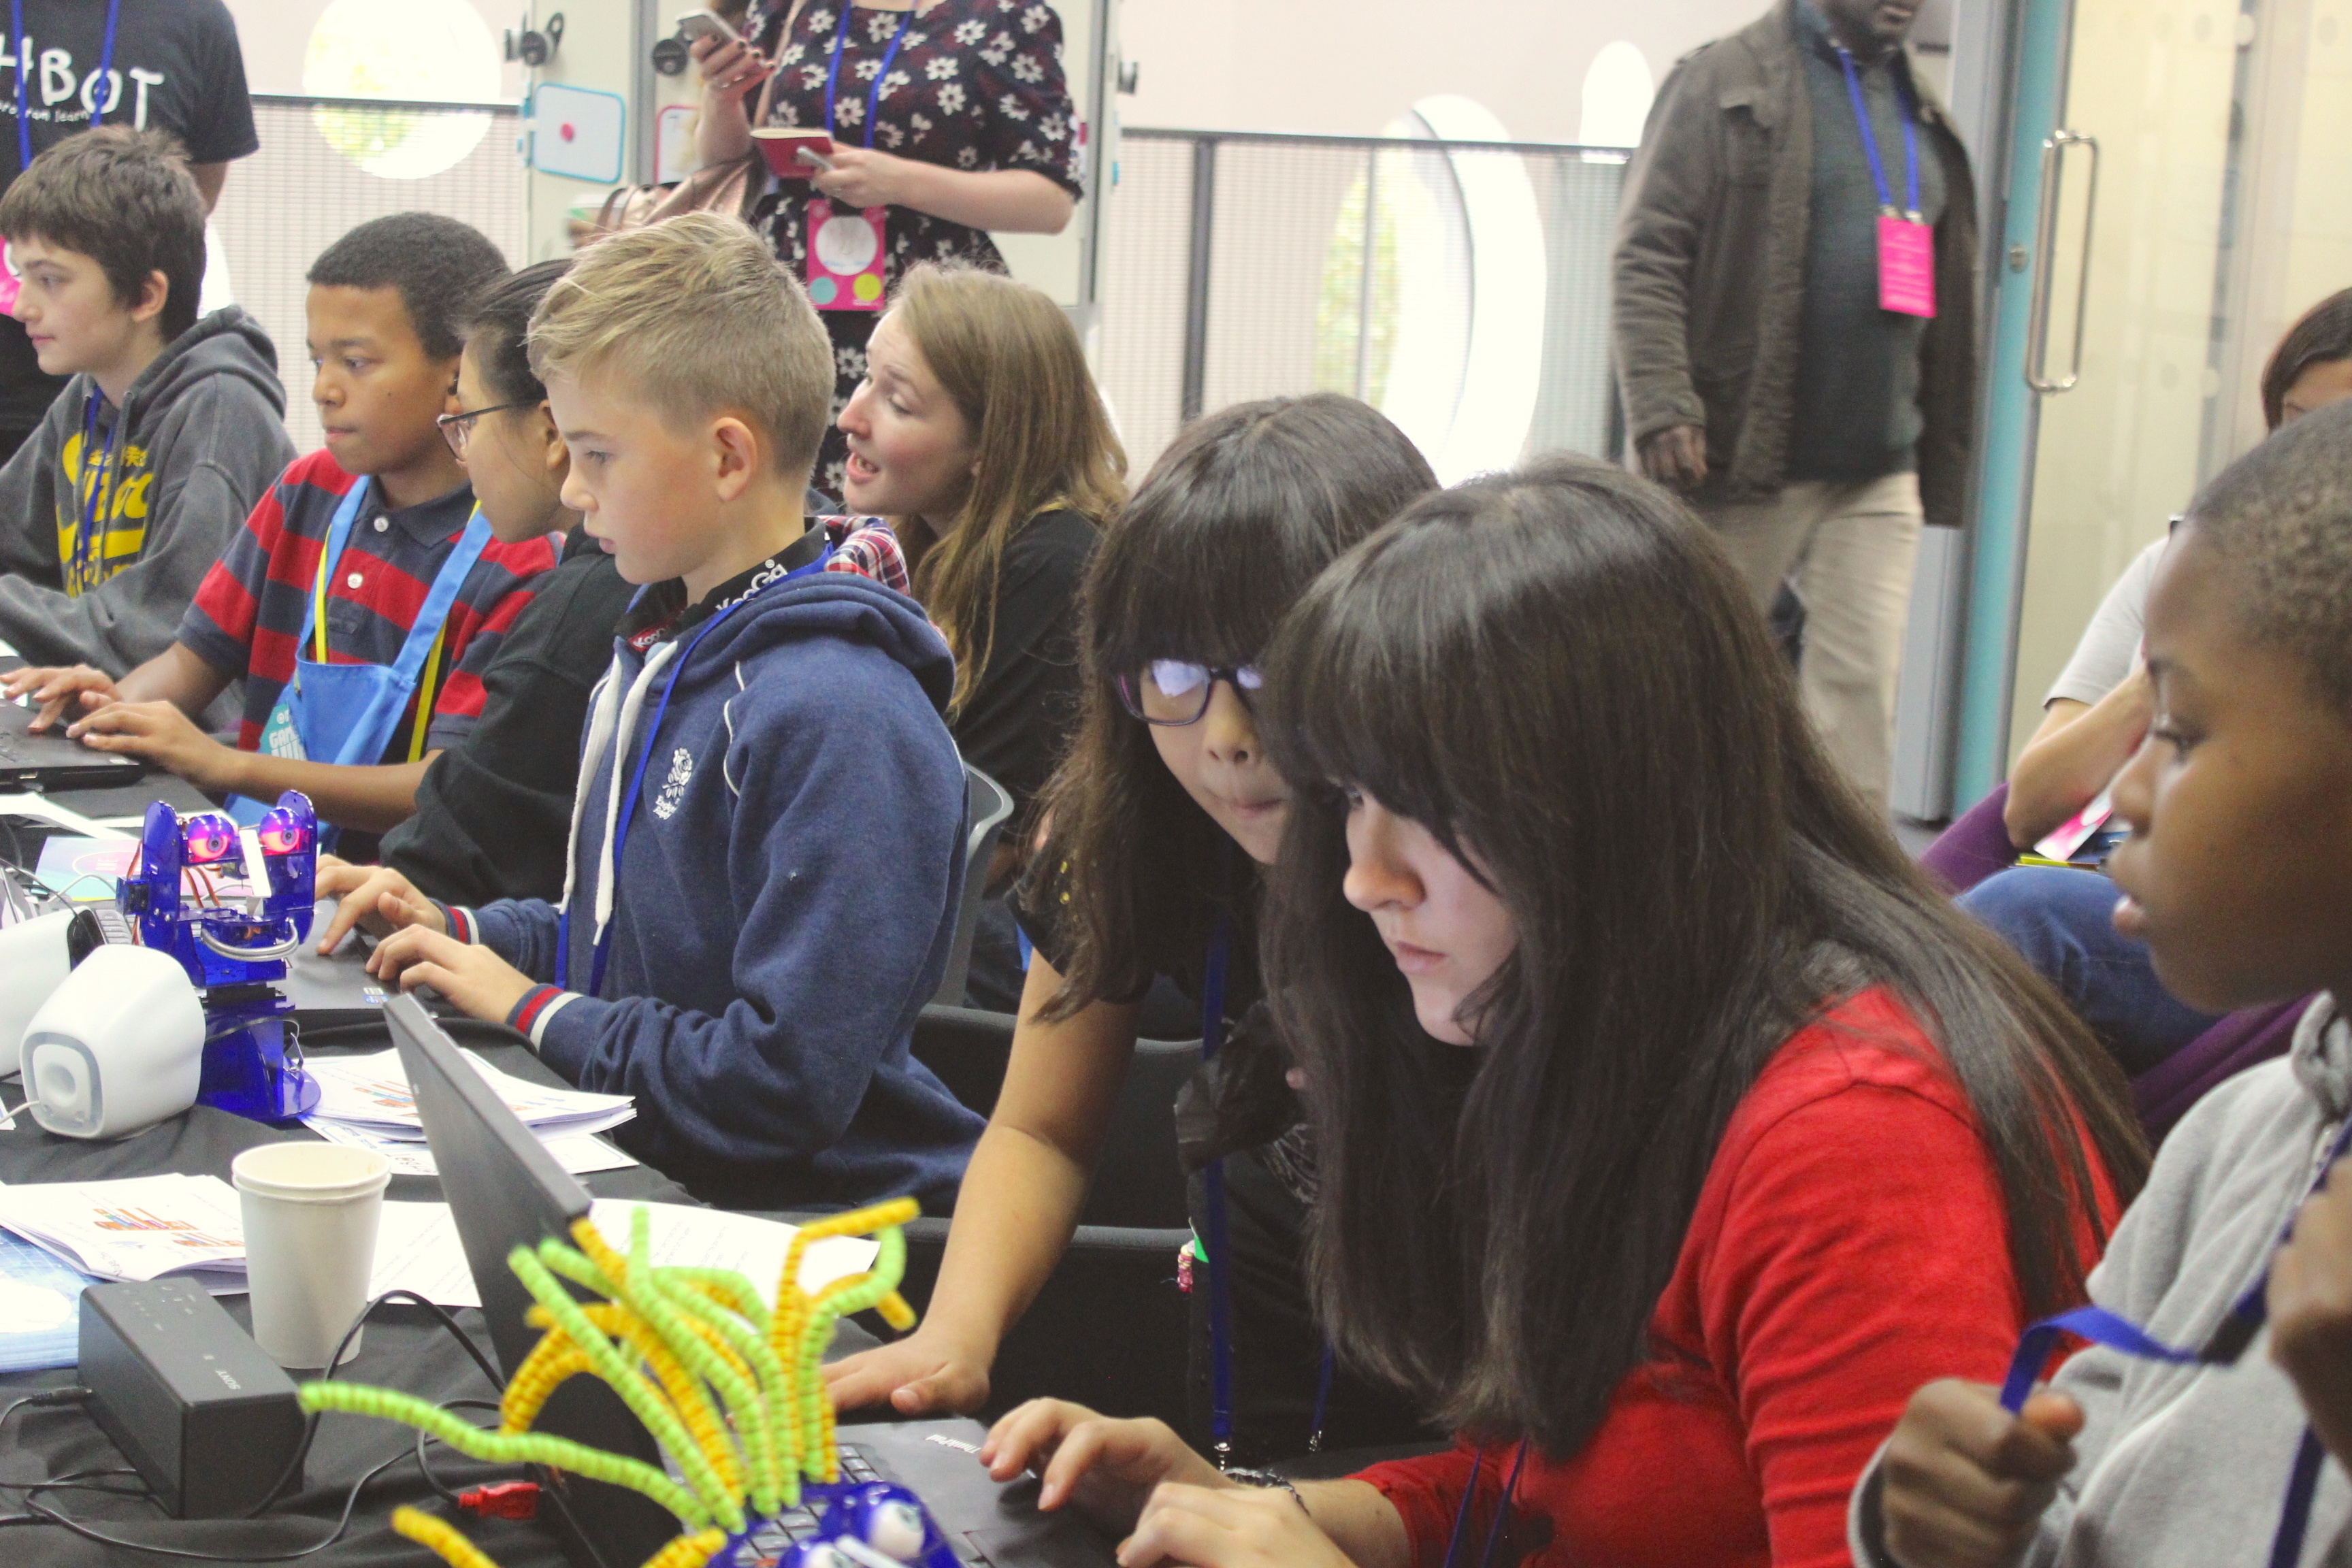 My leadership experience at Mozfest with Helix Arts